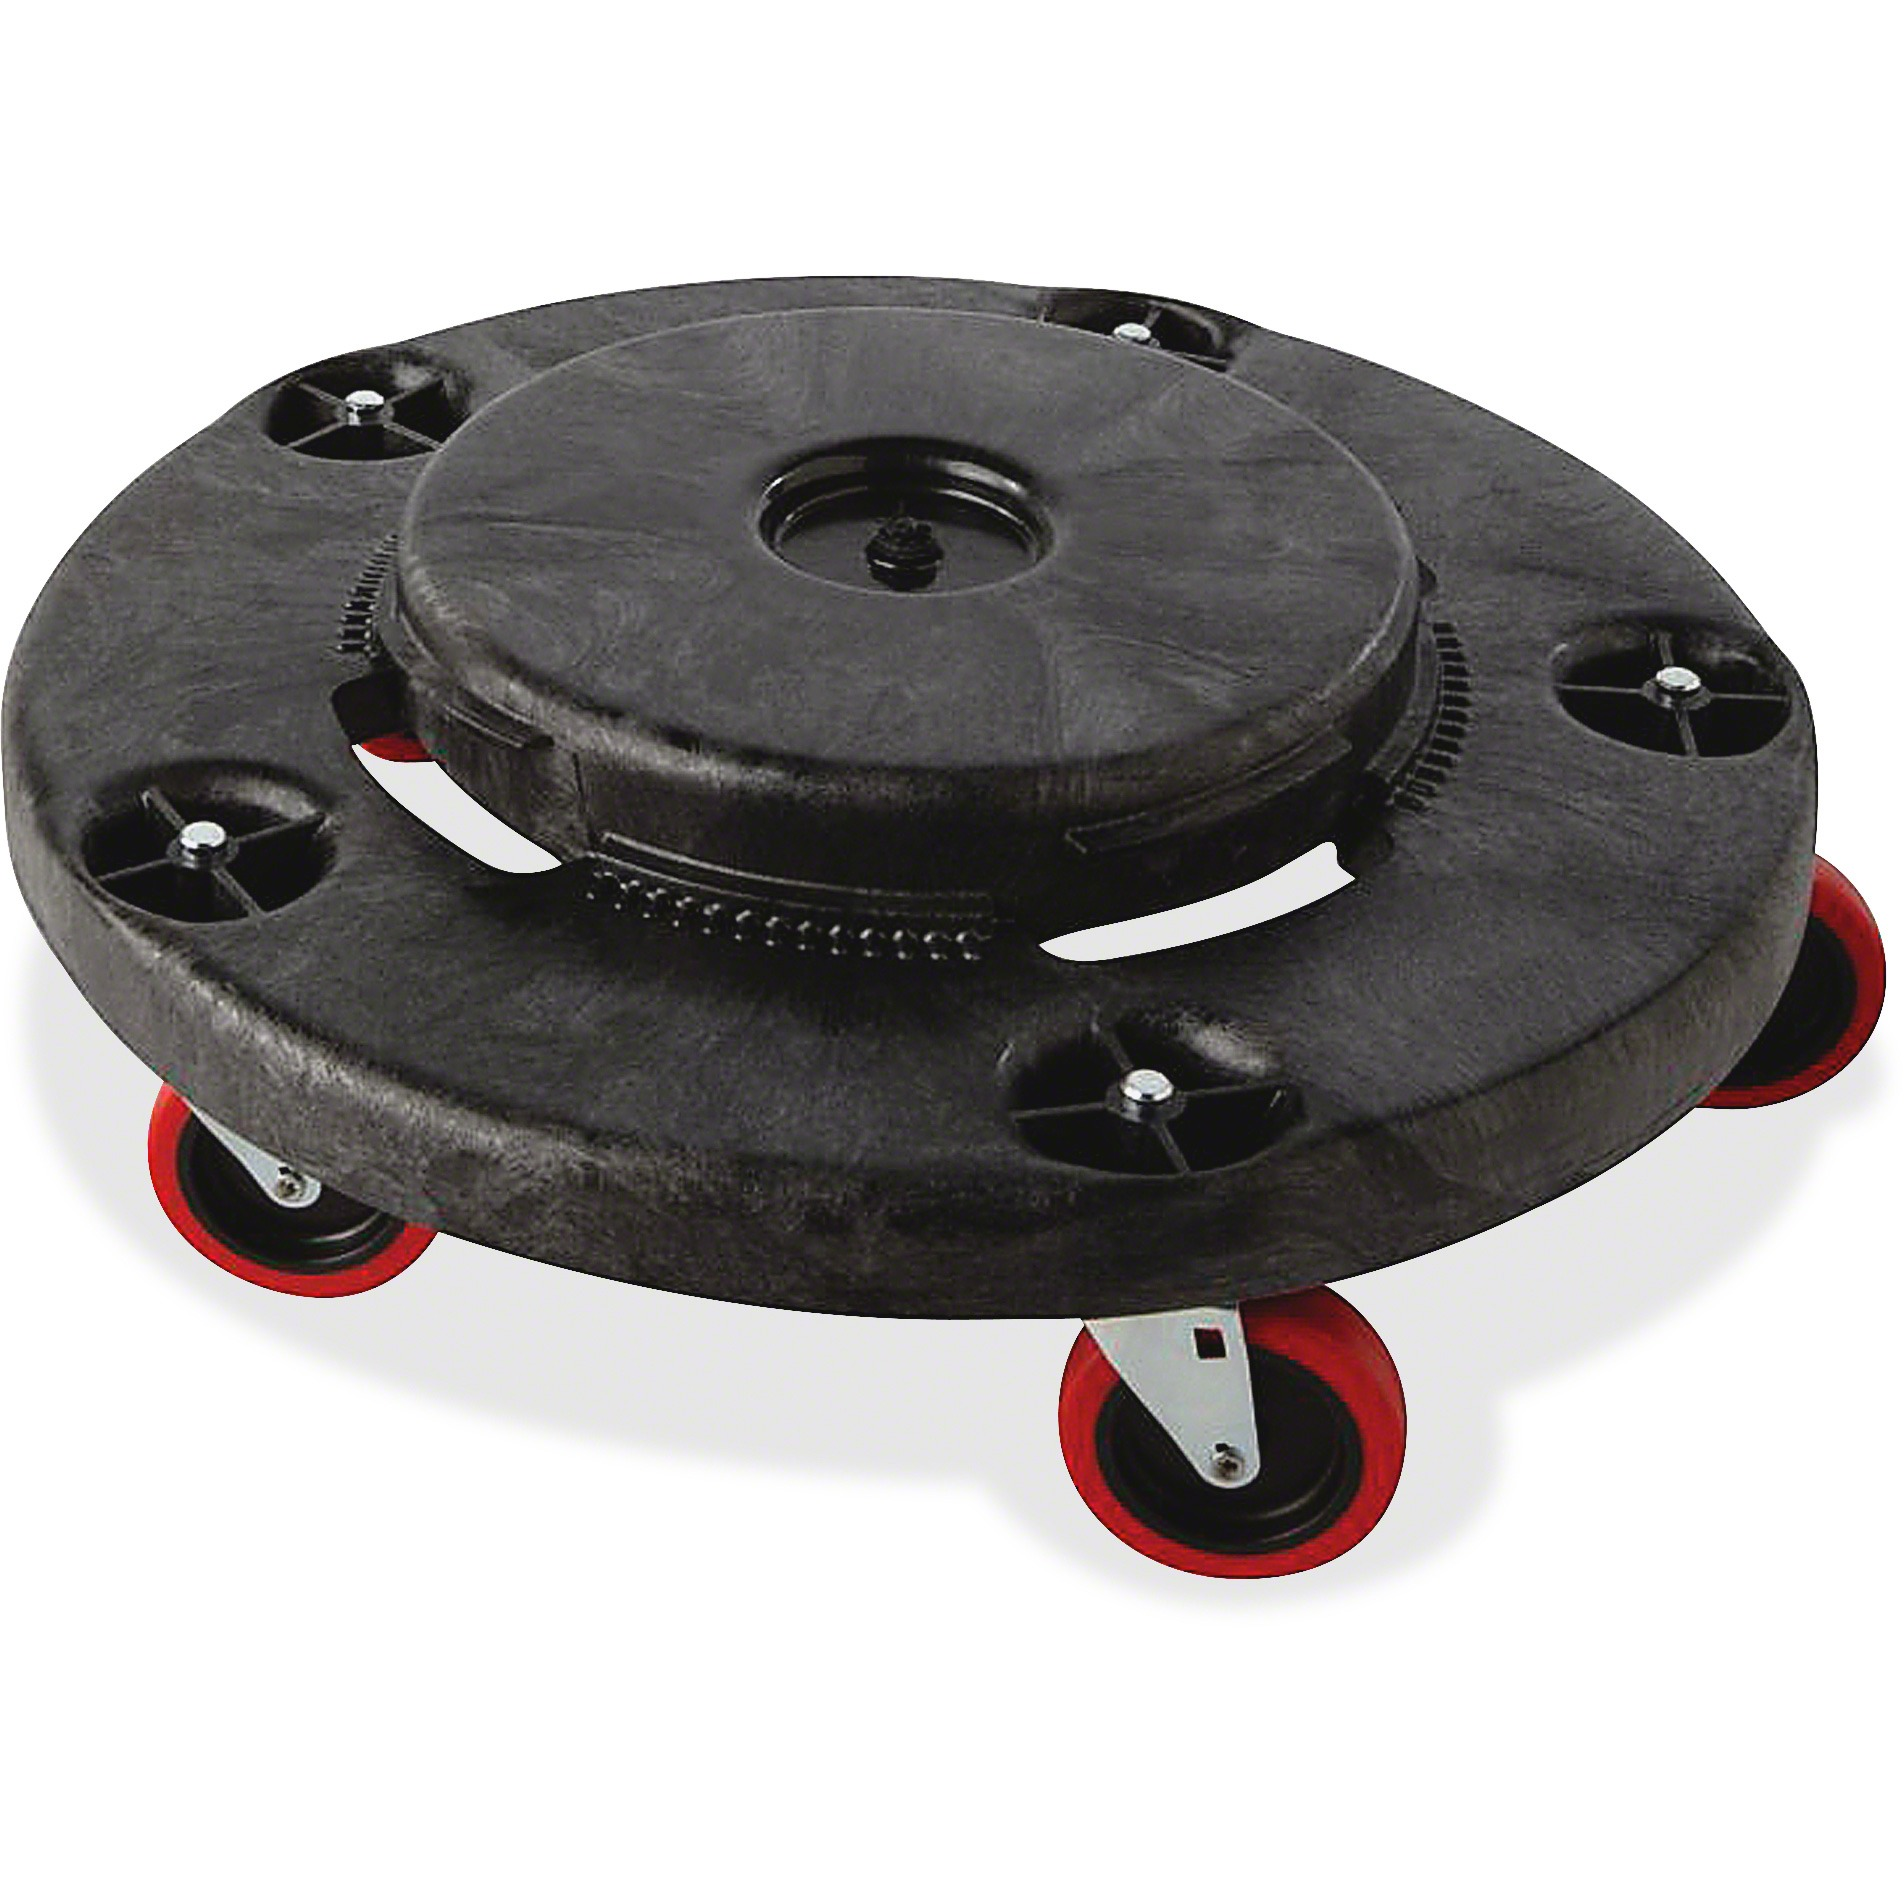 Rubbermaid Brute Quiet Dolly, Black